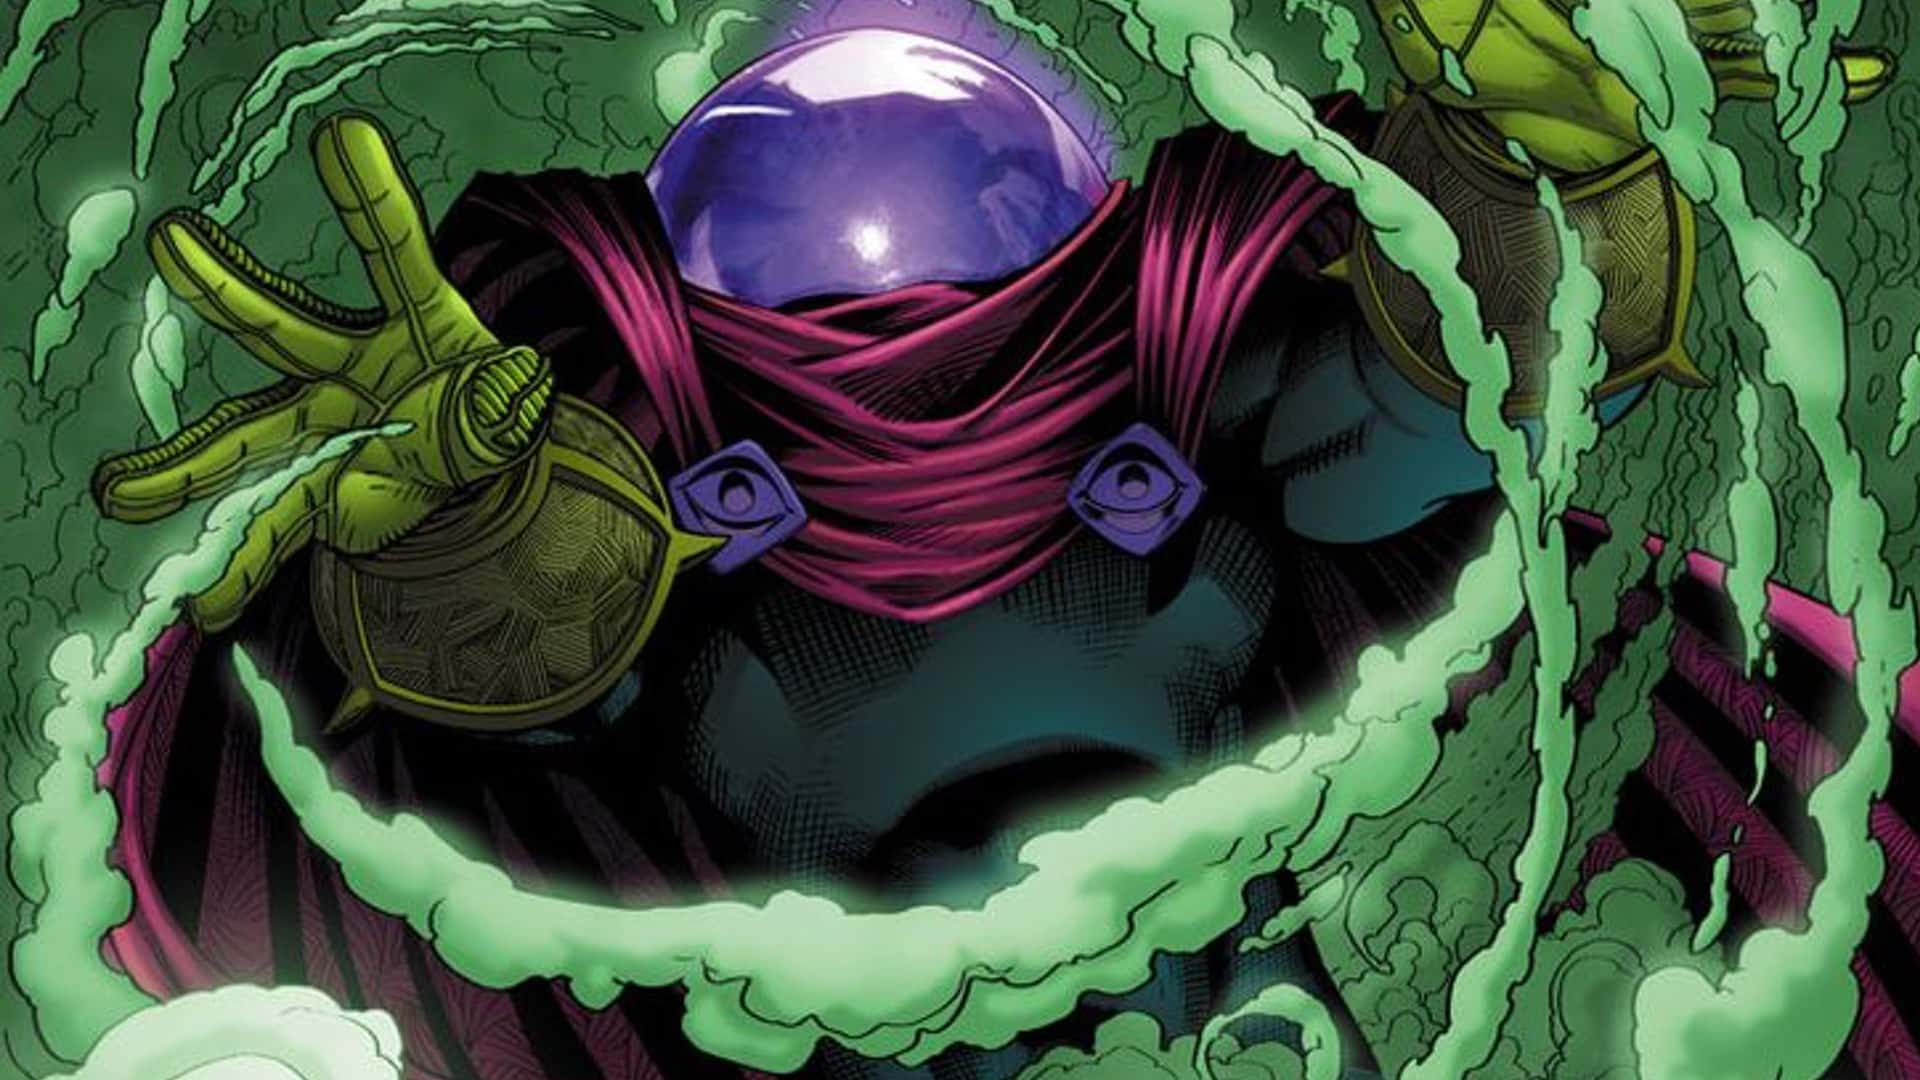 Spider-Man: Far From Home - Mysterio non sarà nemico di Spiderman!